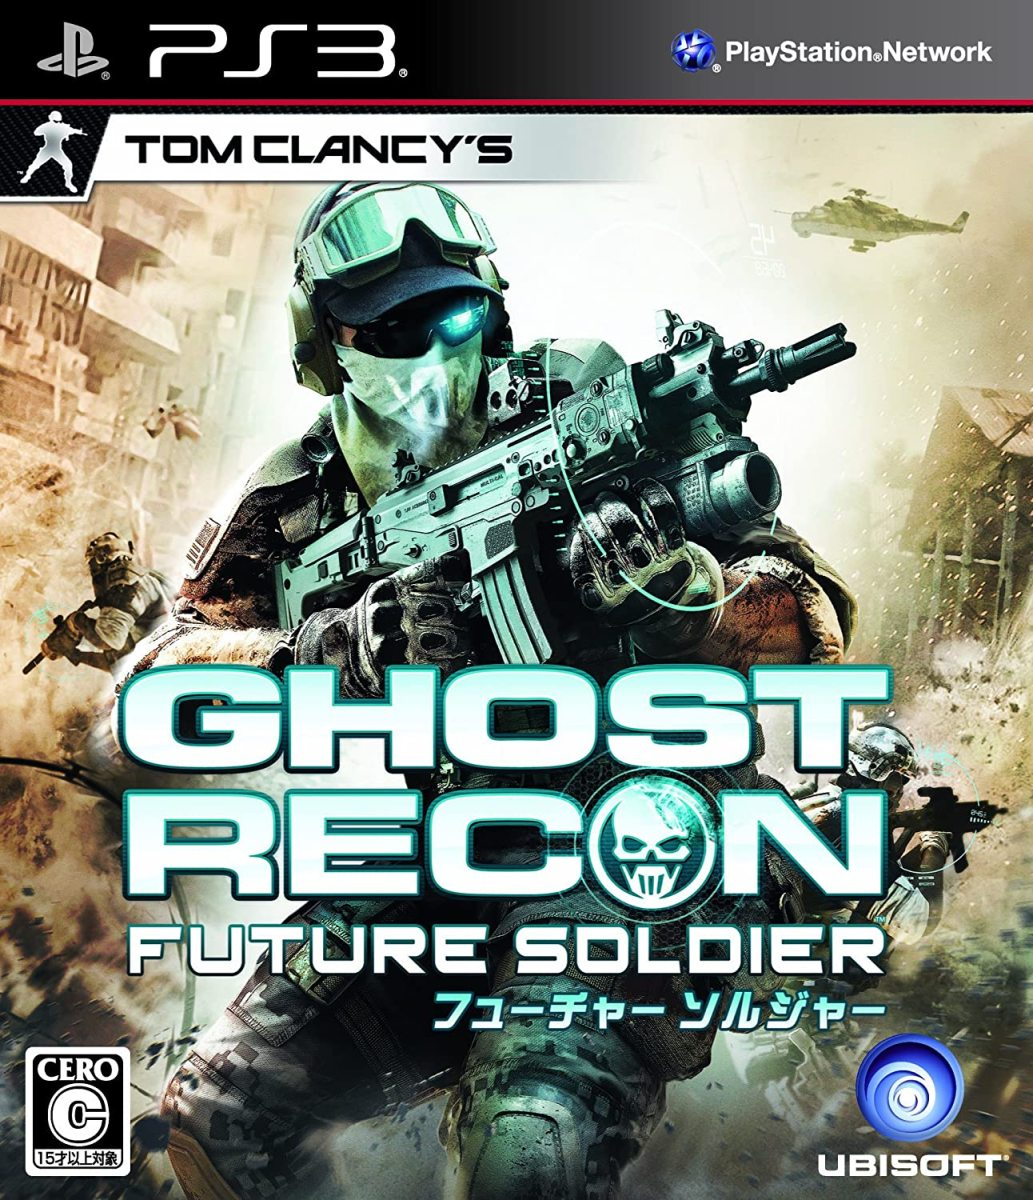 【PS3】ユービーアイ ソフト ゴーストリコン フューチャーソルジャー(Ghost Recon Future Soldier)の商品画像